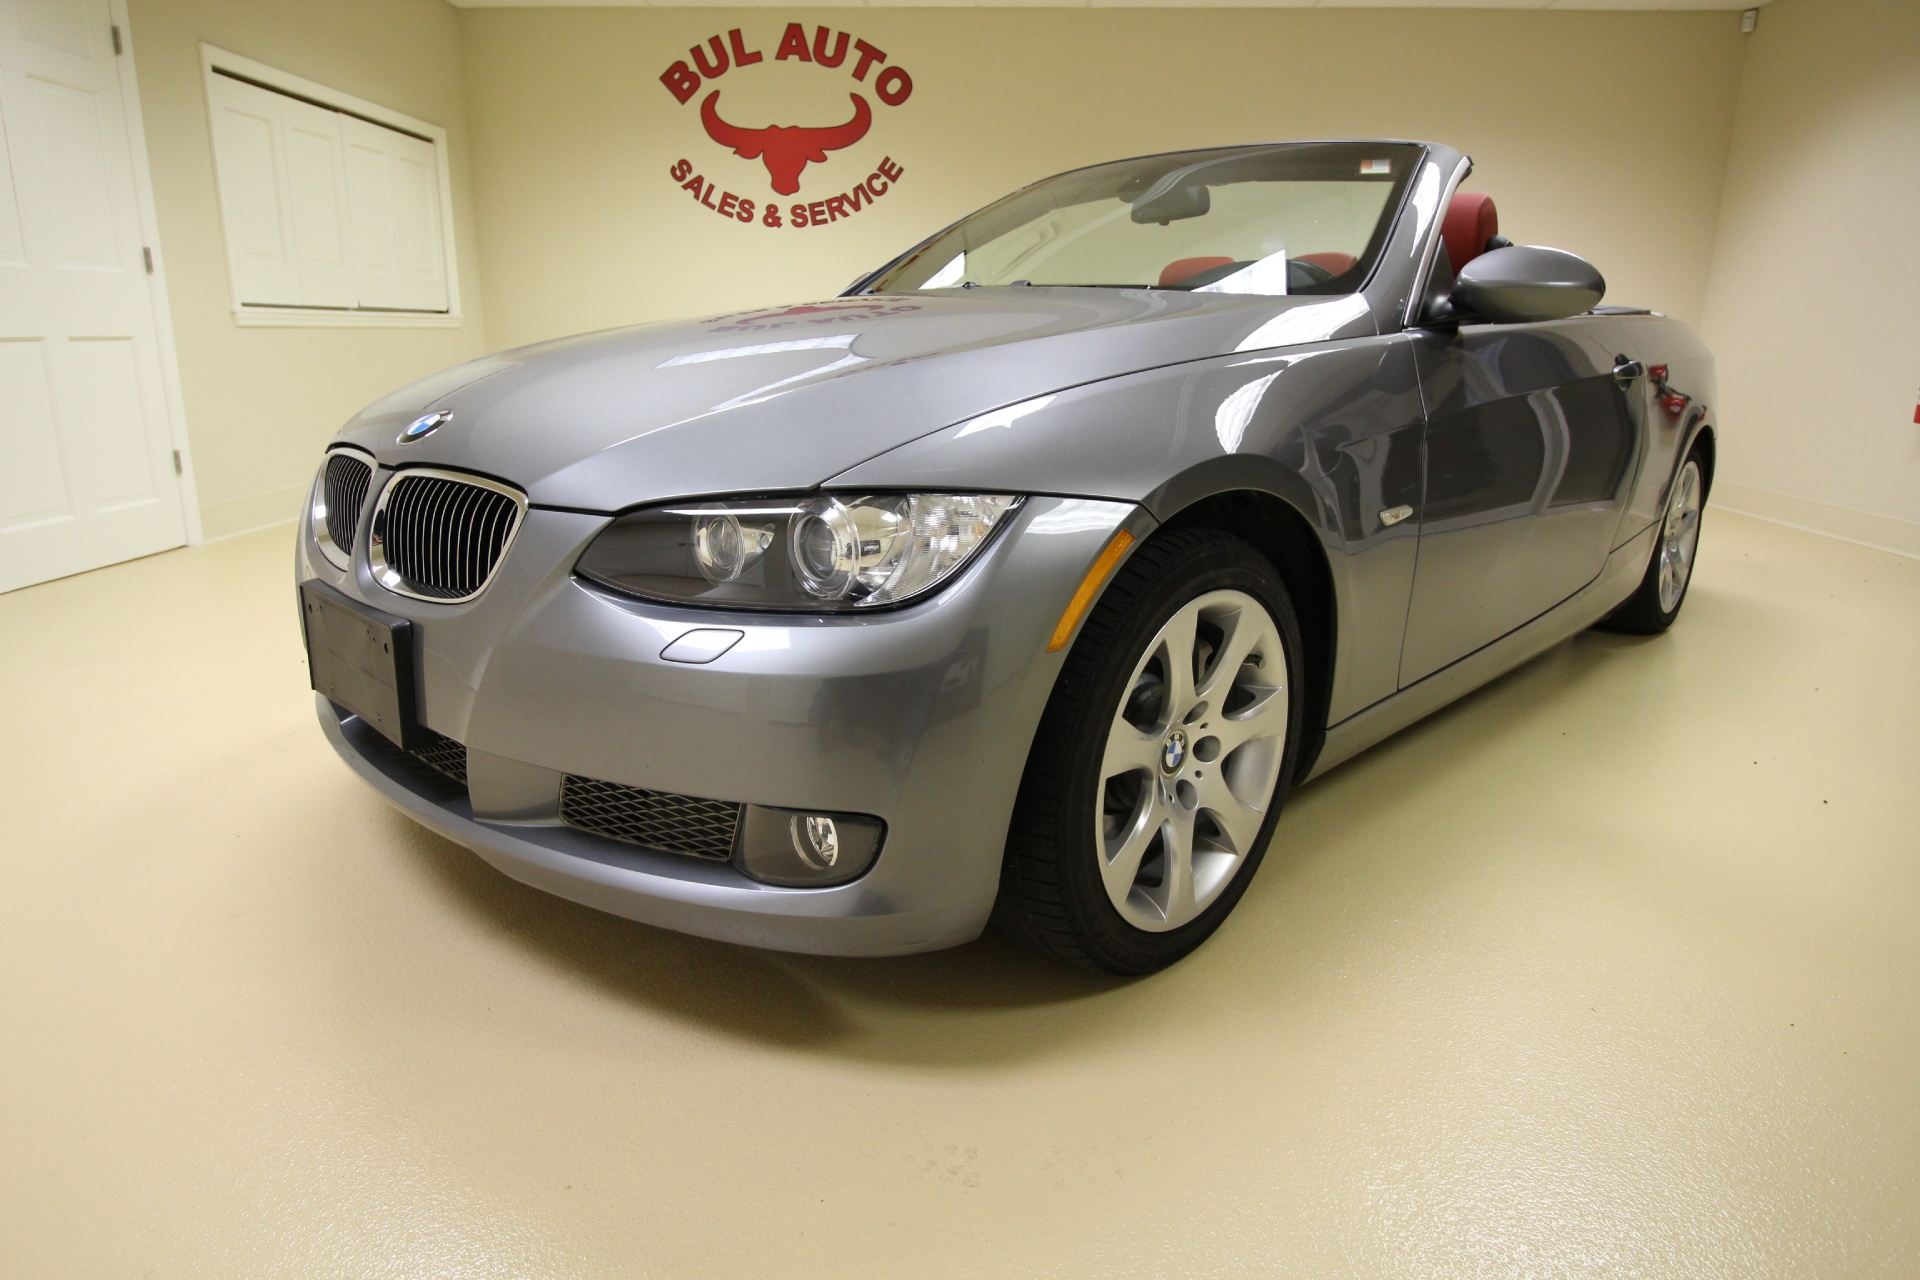 2007 bmw 3 series 335i rare 6 speed manual super low miles 35k stock rh bulautosales com 2009 BMW 335I Owner's Manual bmw 335i auto vs manual